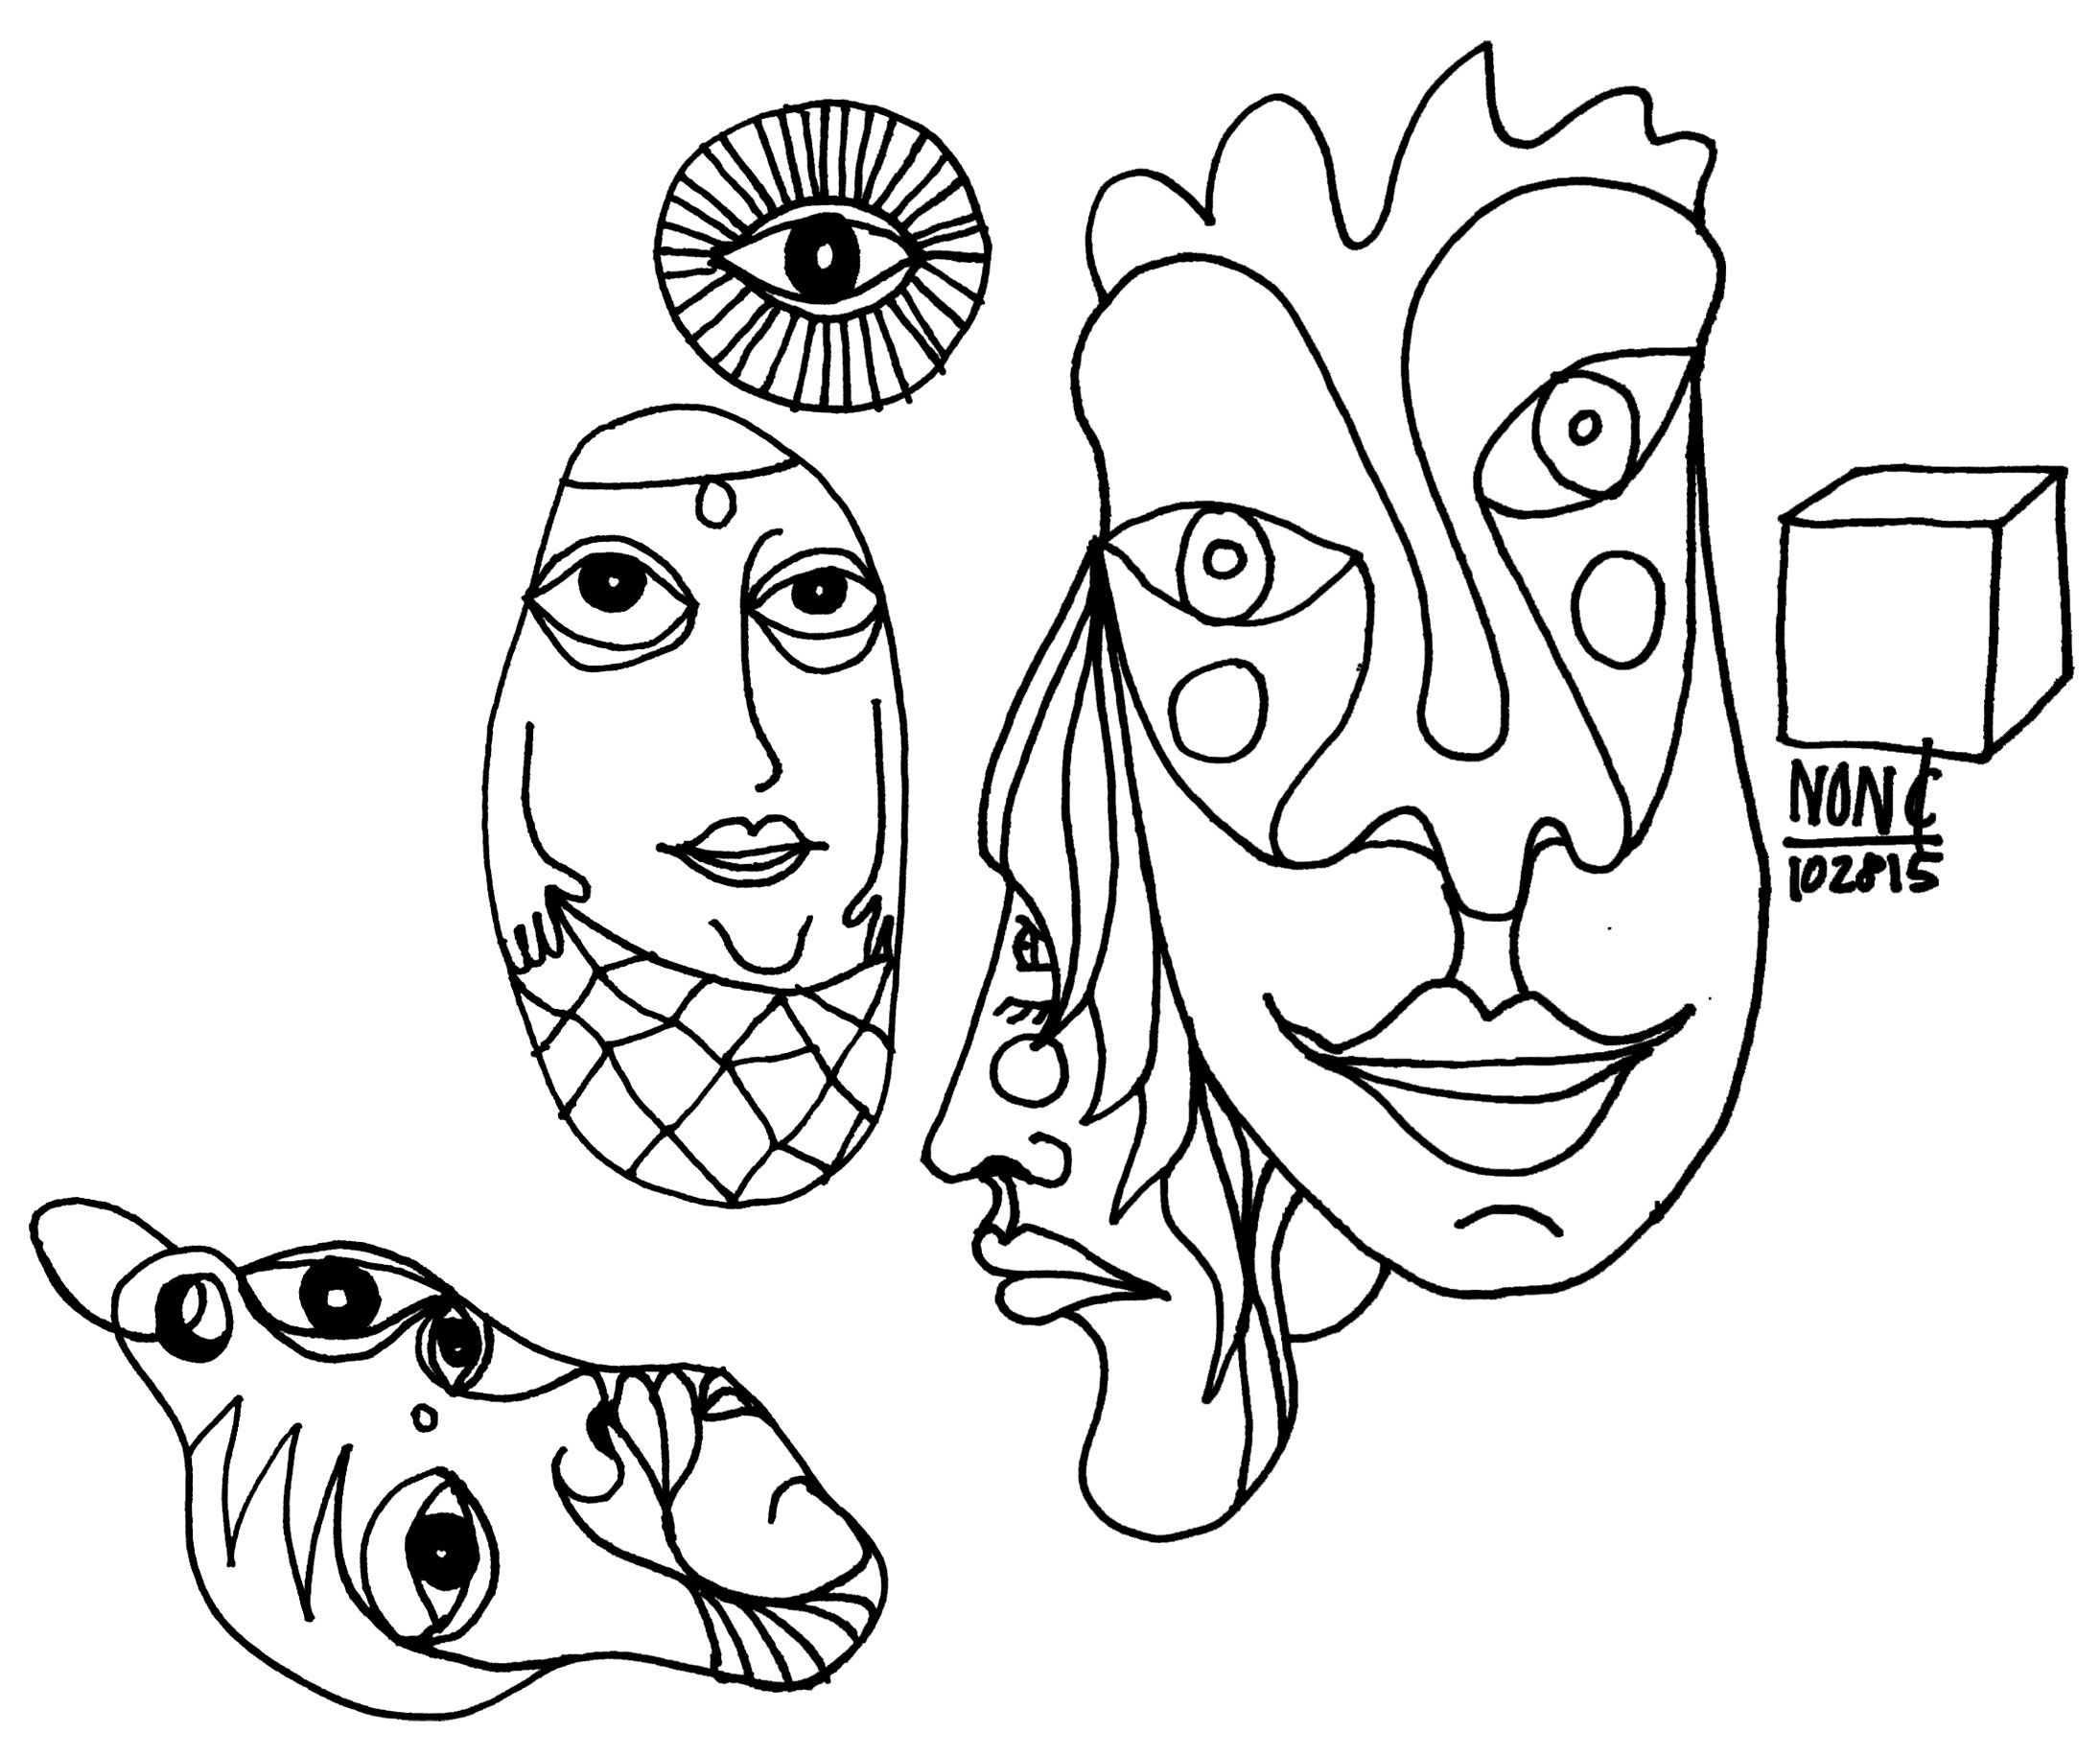 2190x1831 Ring Random Freestyle Drawing Includes Faces, Eyes, And Funky